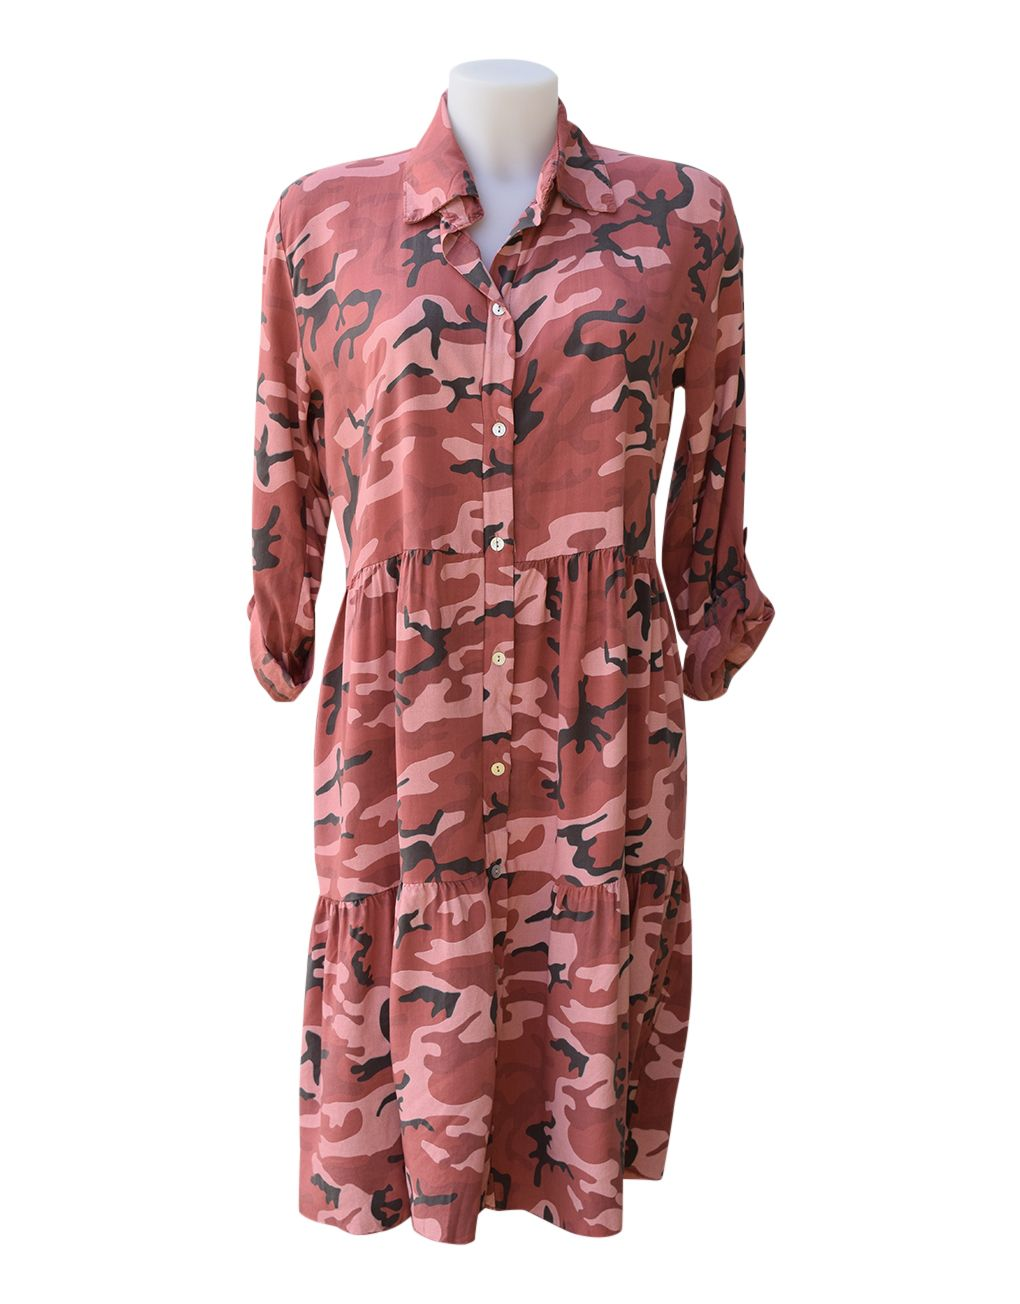 Fashion Fix Italian Camouflage Buttoned Tunic Dress Terracotta